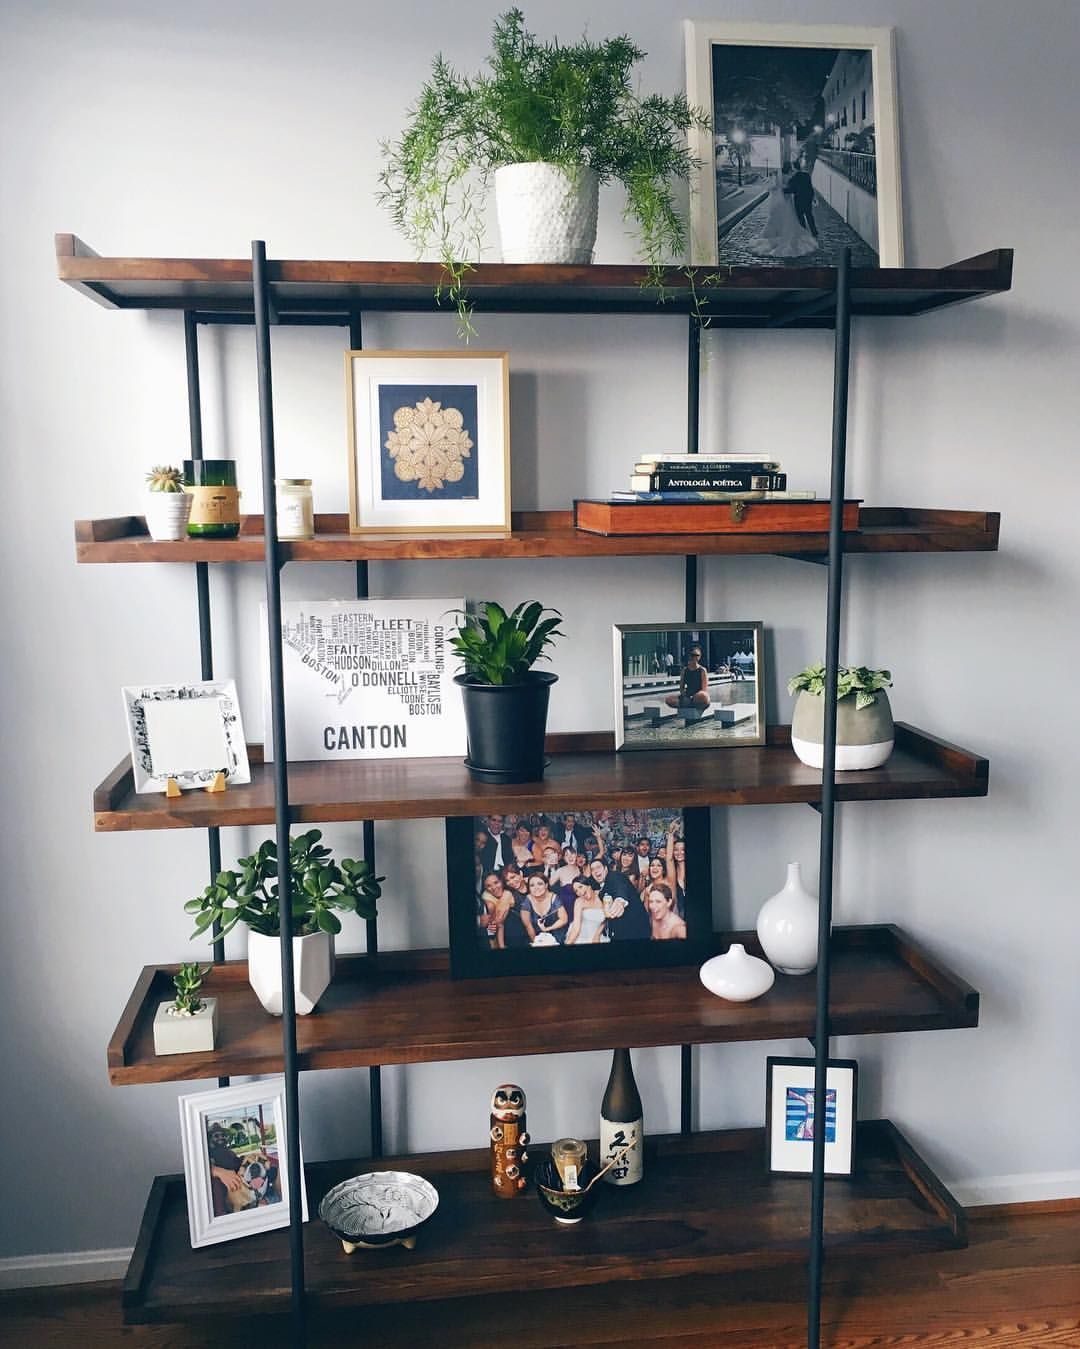 Finally Making Our House Into A Home Crate Barrel Beckett 5 High Shelf Living Room Inspiration S Crate Barrel Living Room Home Decor Living Room Remodel